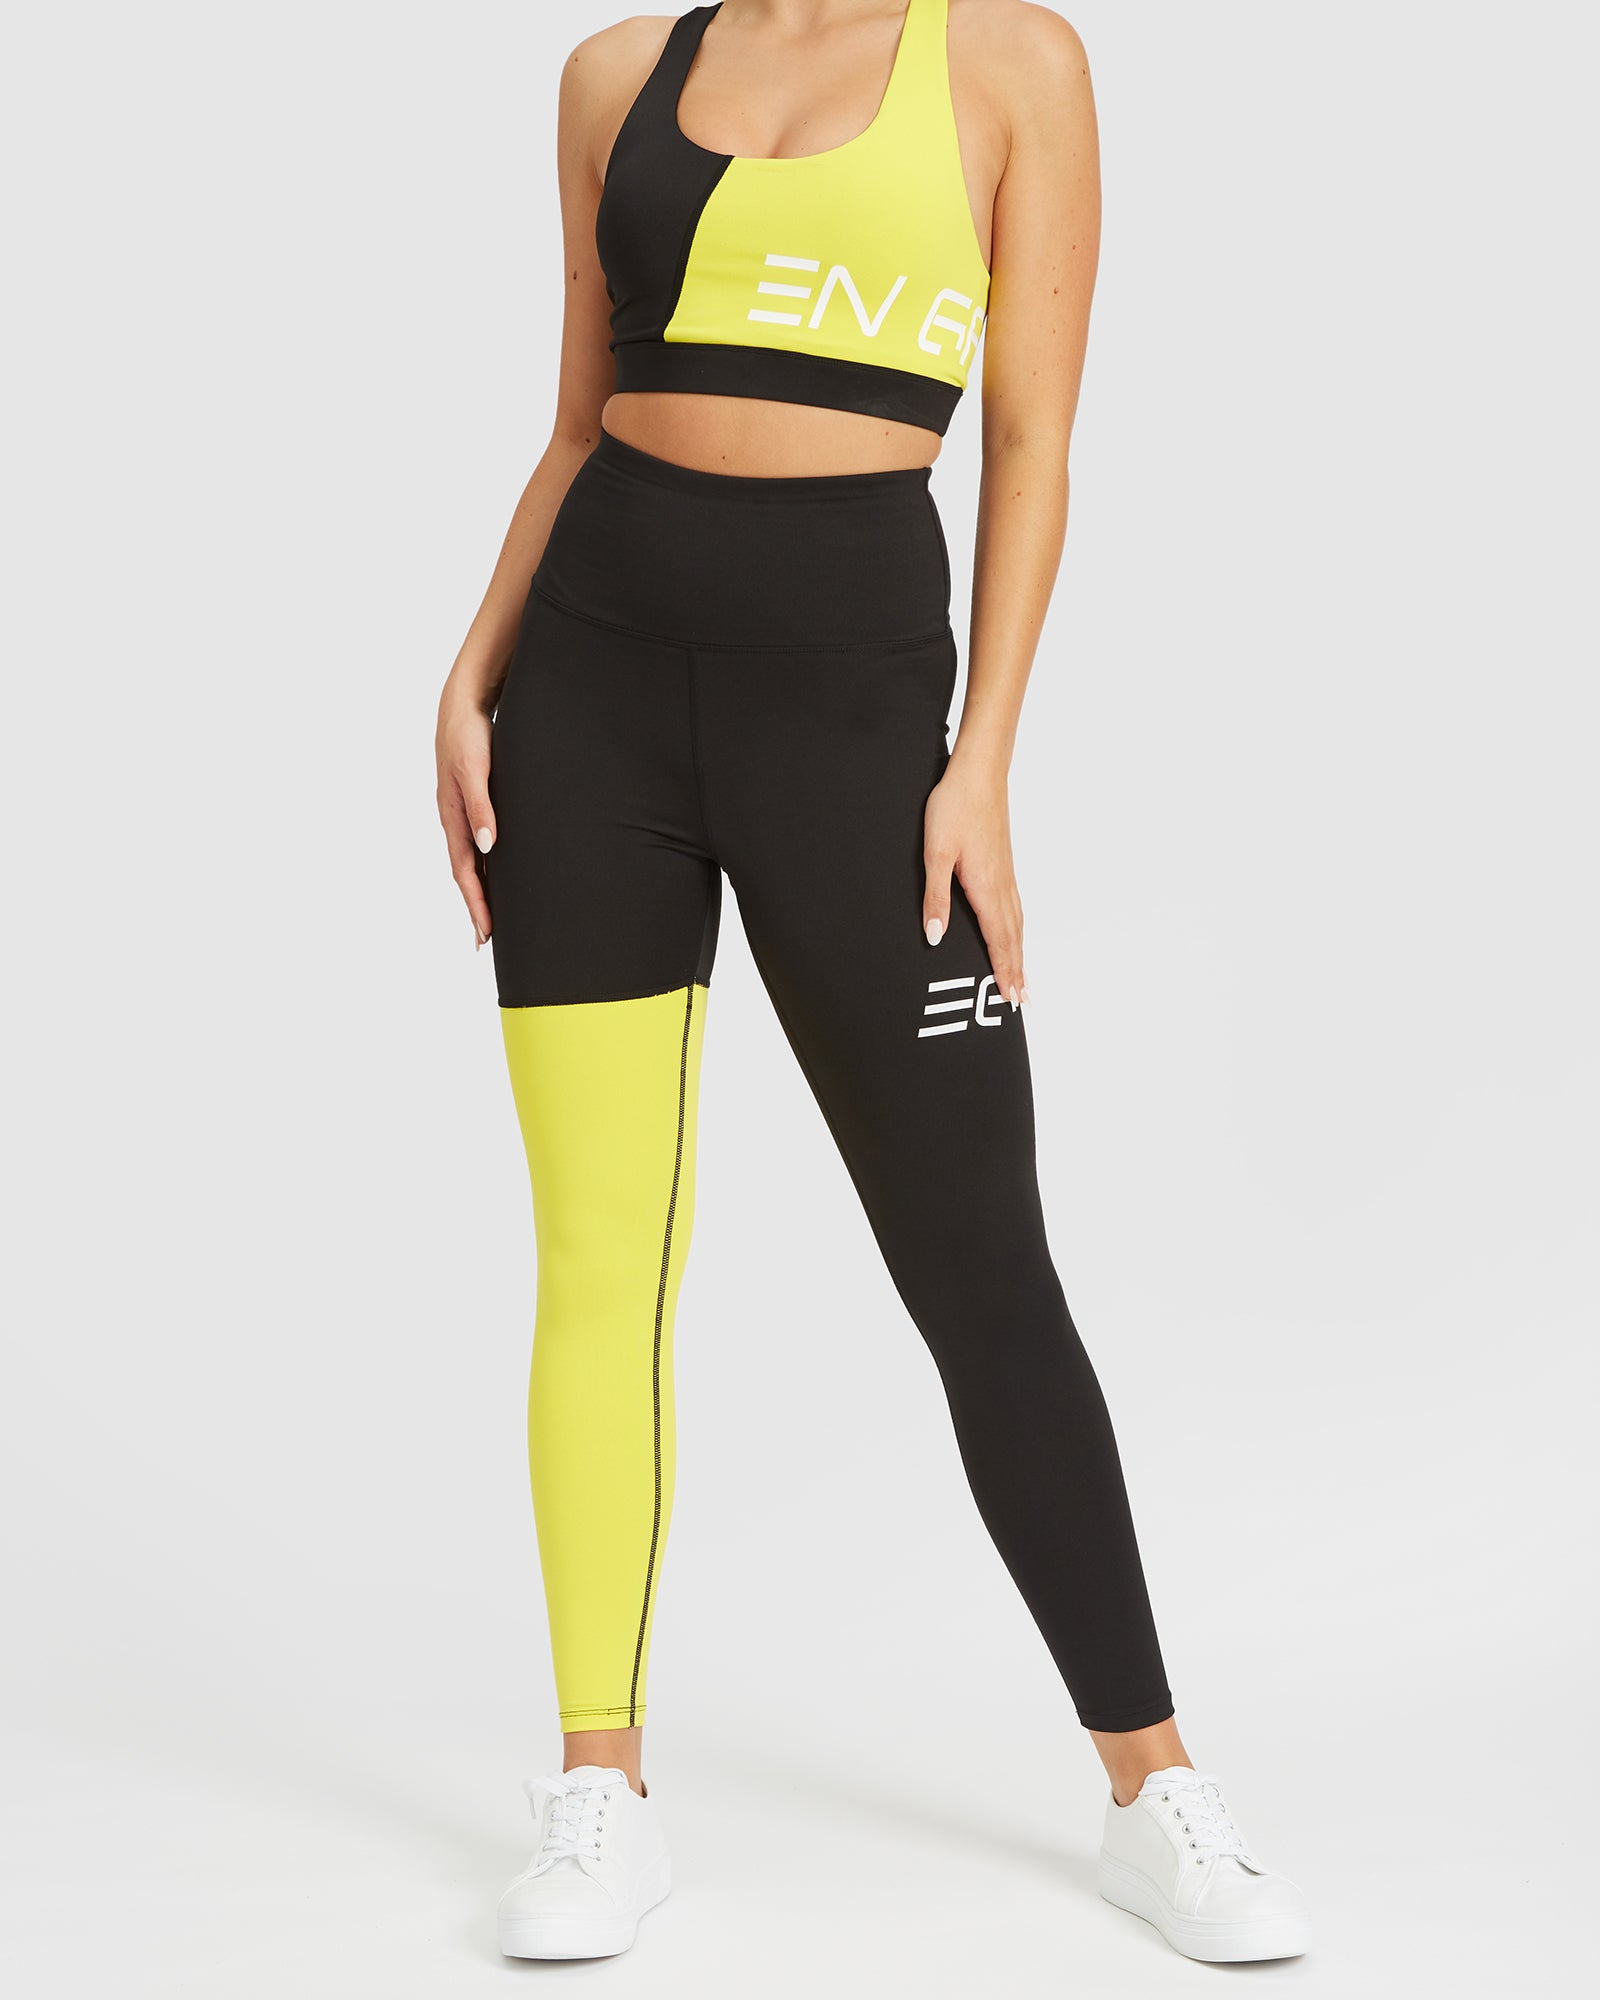 black_yellow_legging